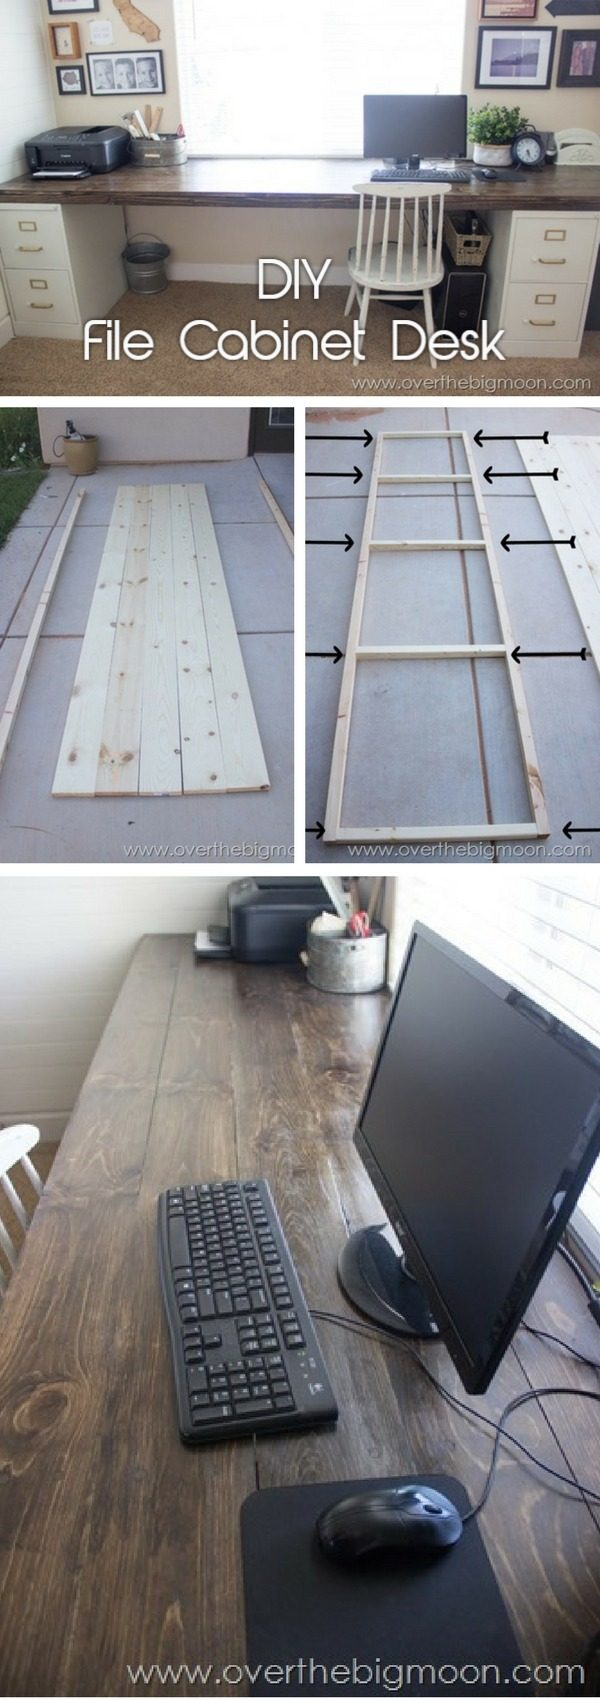 Check out the tutorial how to build a DIY desk from file cabinets and wood planks